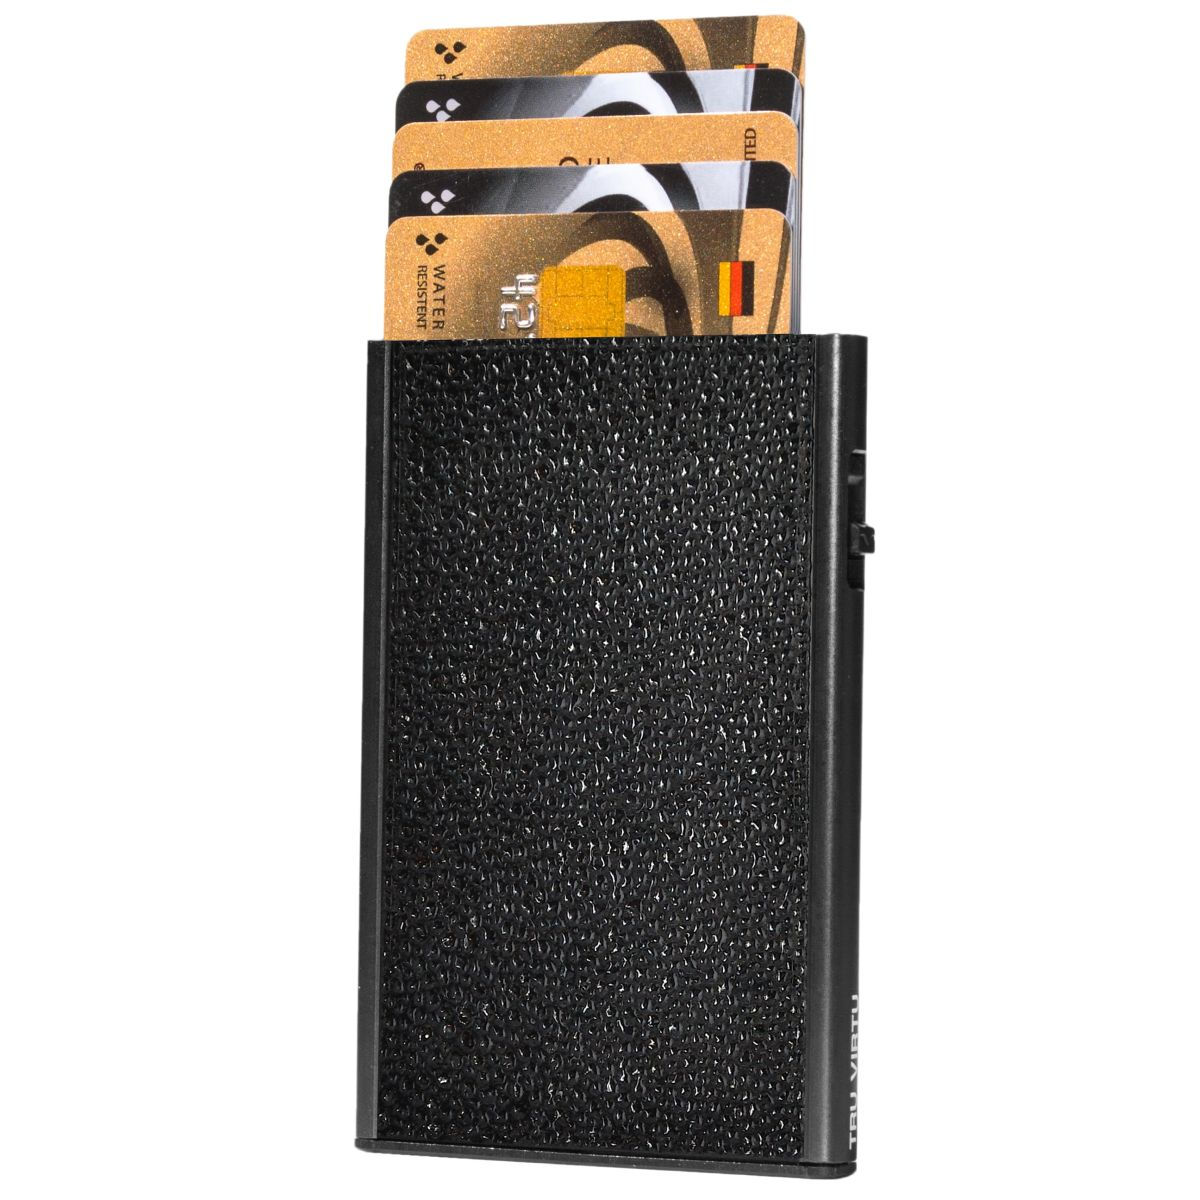 TRU VIRTU Card Case Click n Slide Wallet - Sting Ray Black